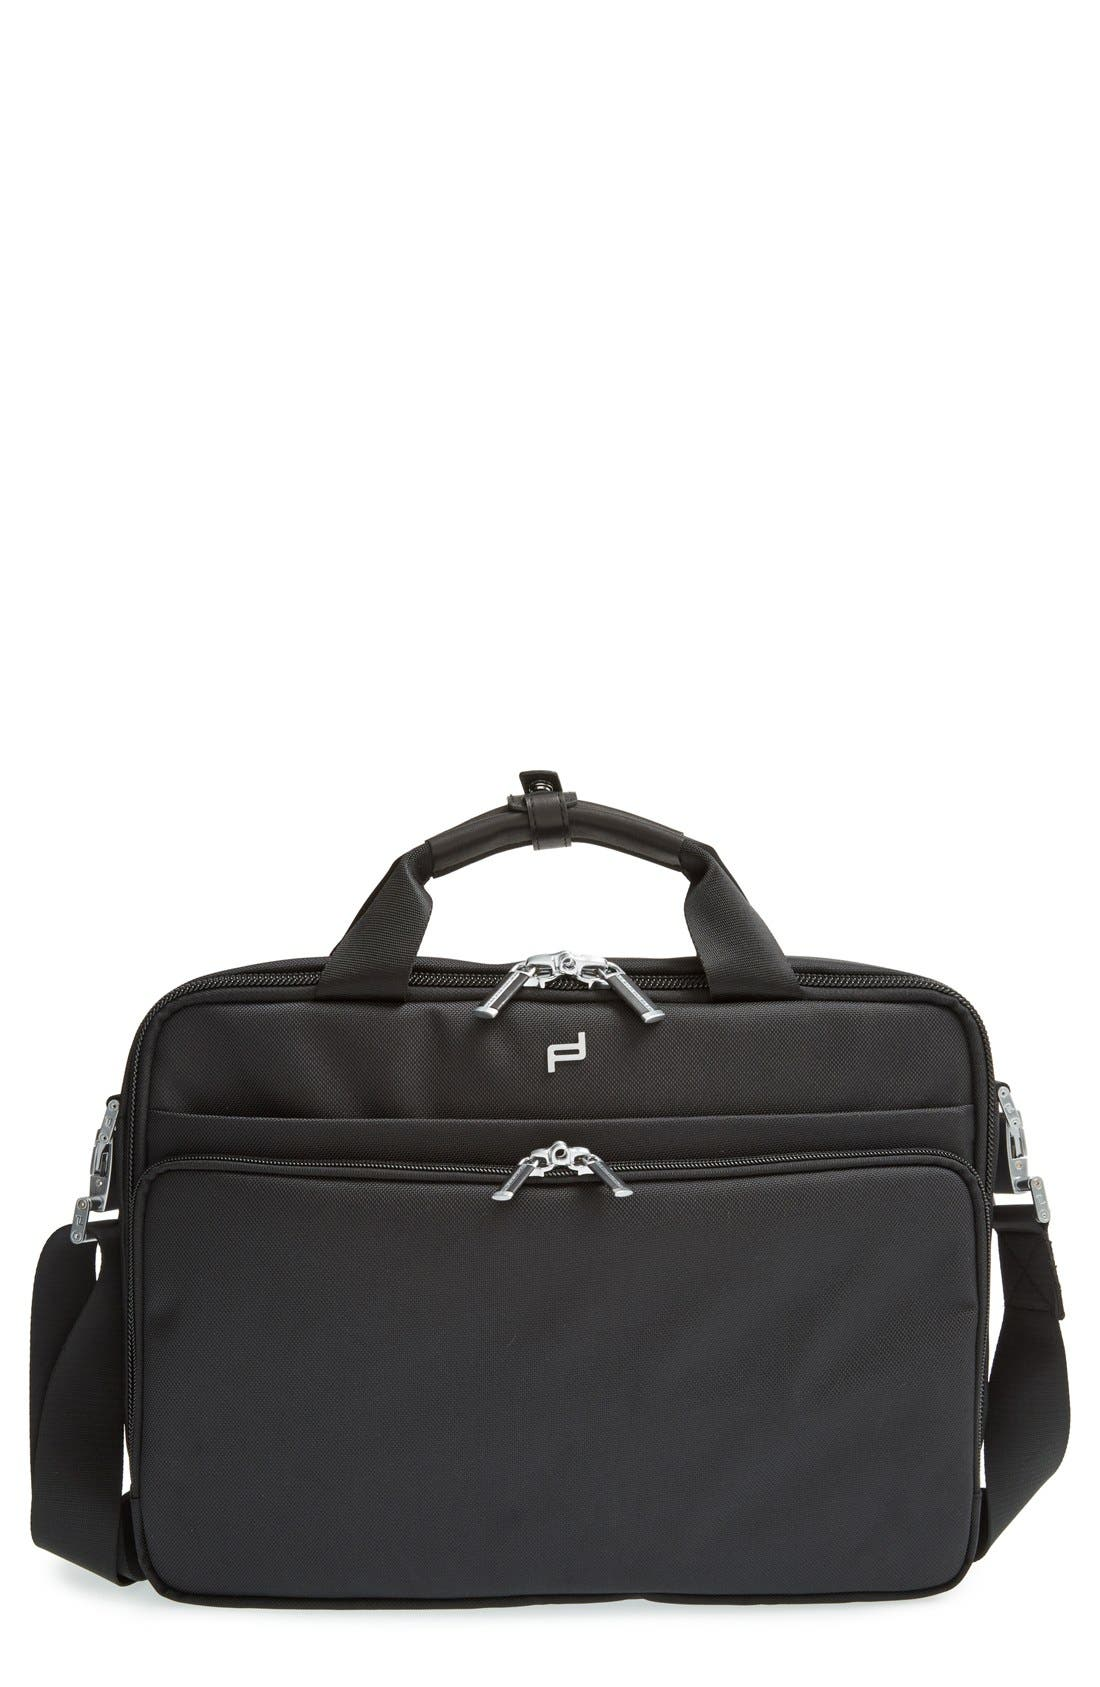 PORSCHE DESIGN Roadster 3.0 Briefcase